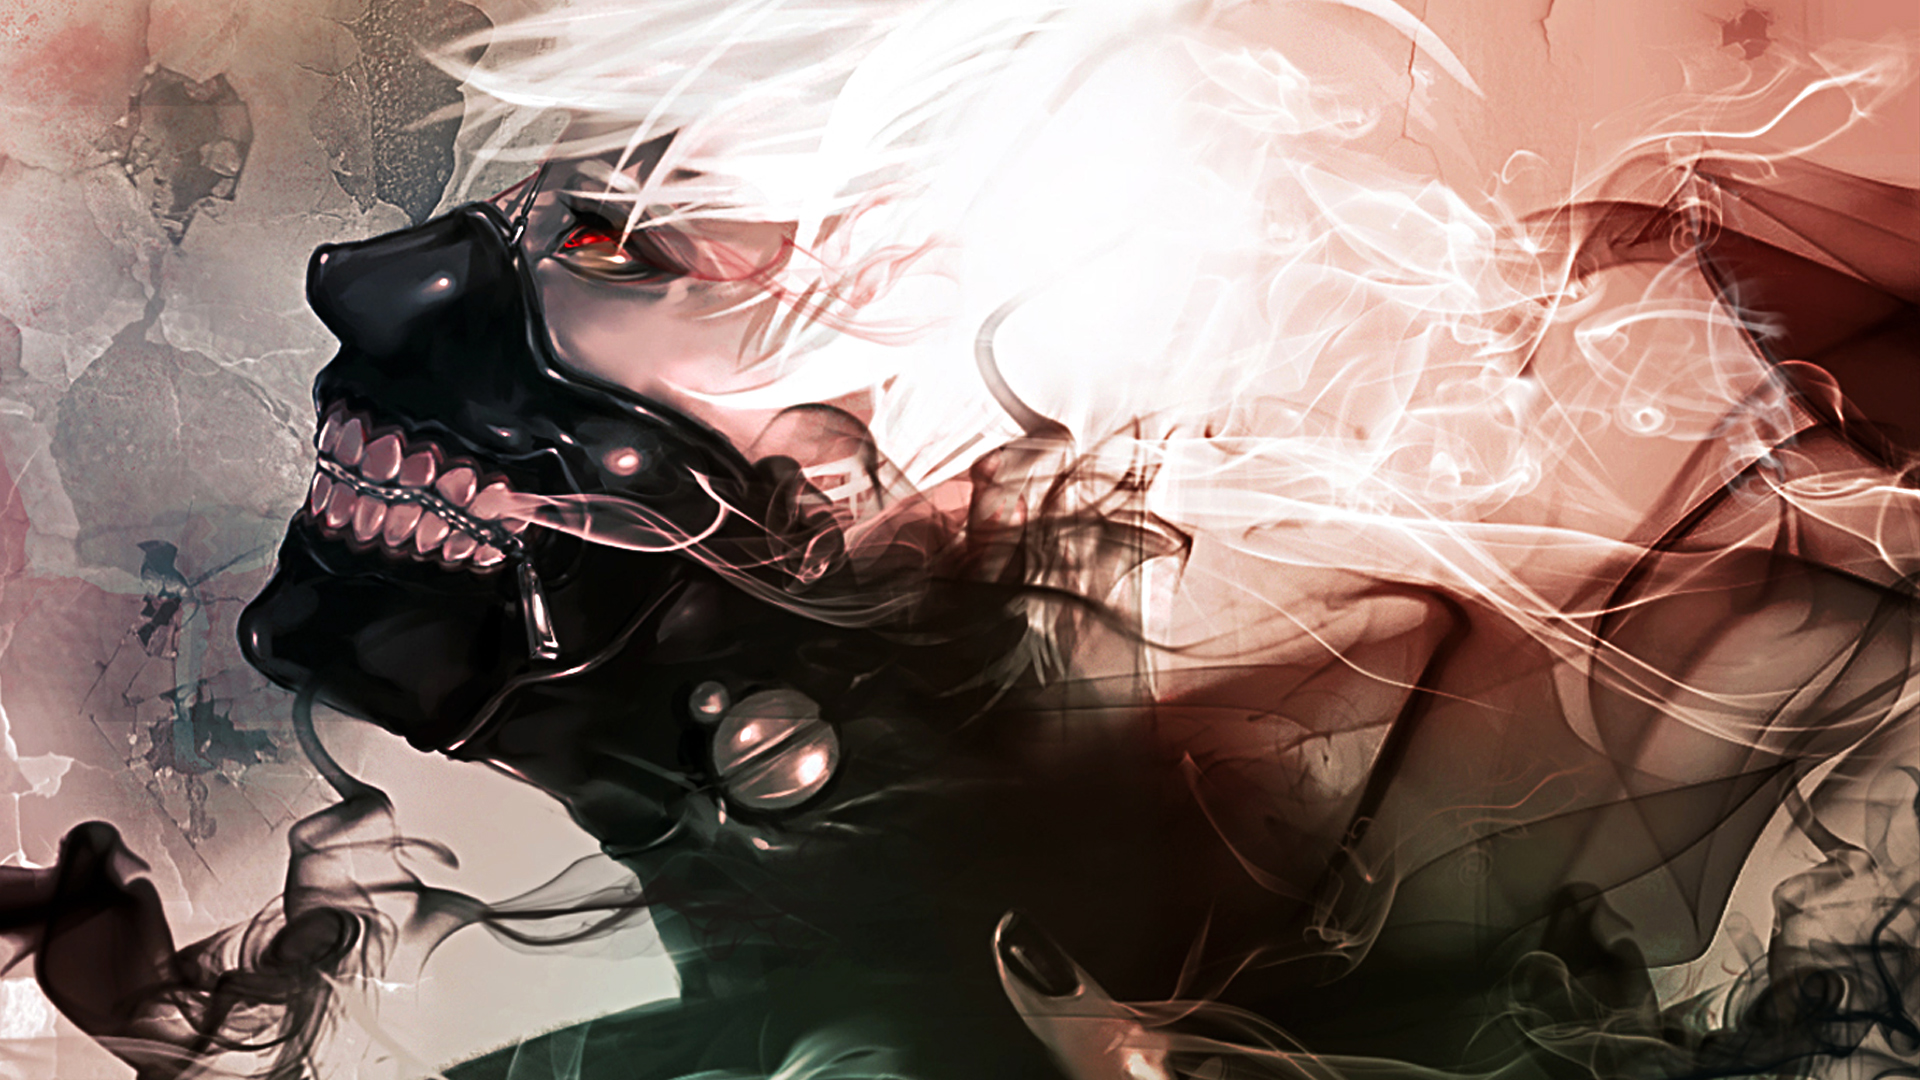 currently viewing Tokyo Ghoul Wallpaper Download this Full HD High 1920x1080